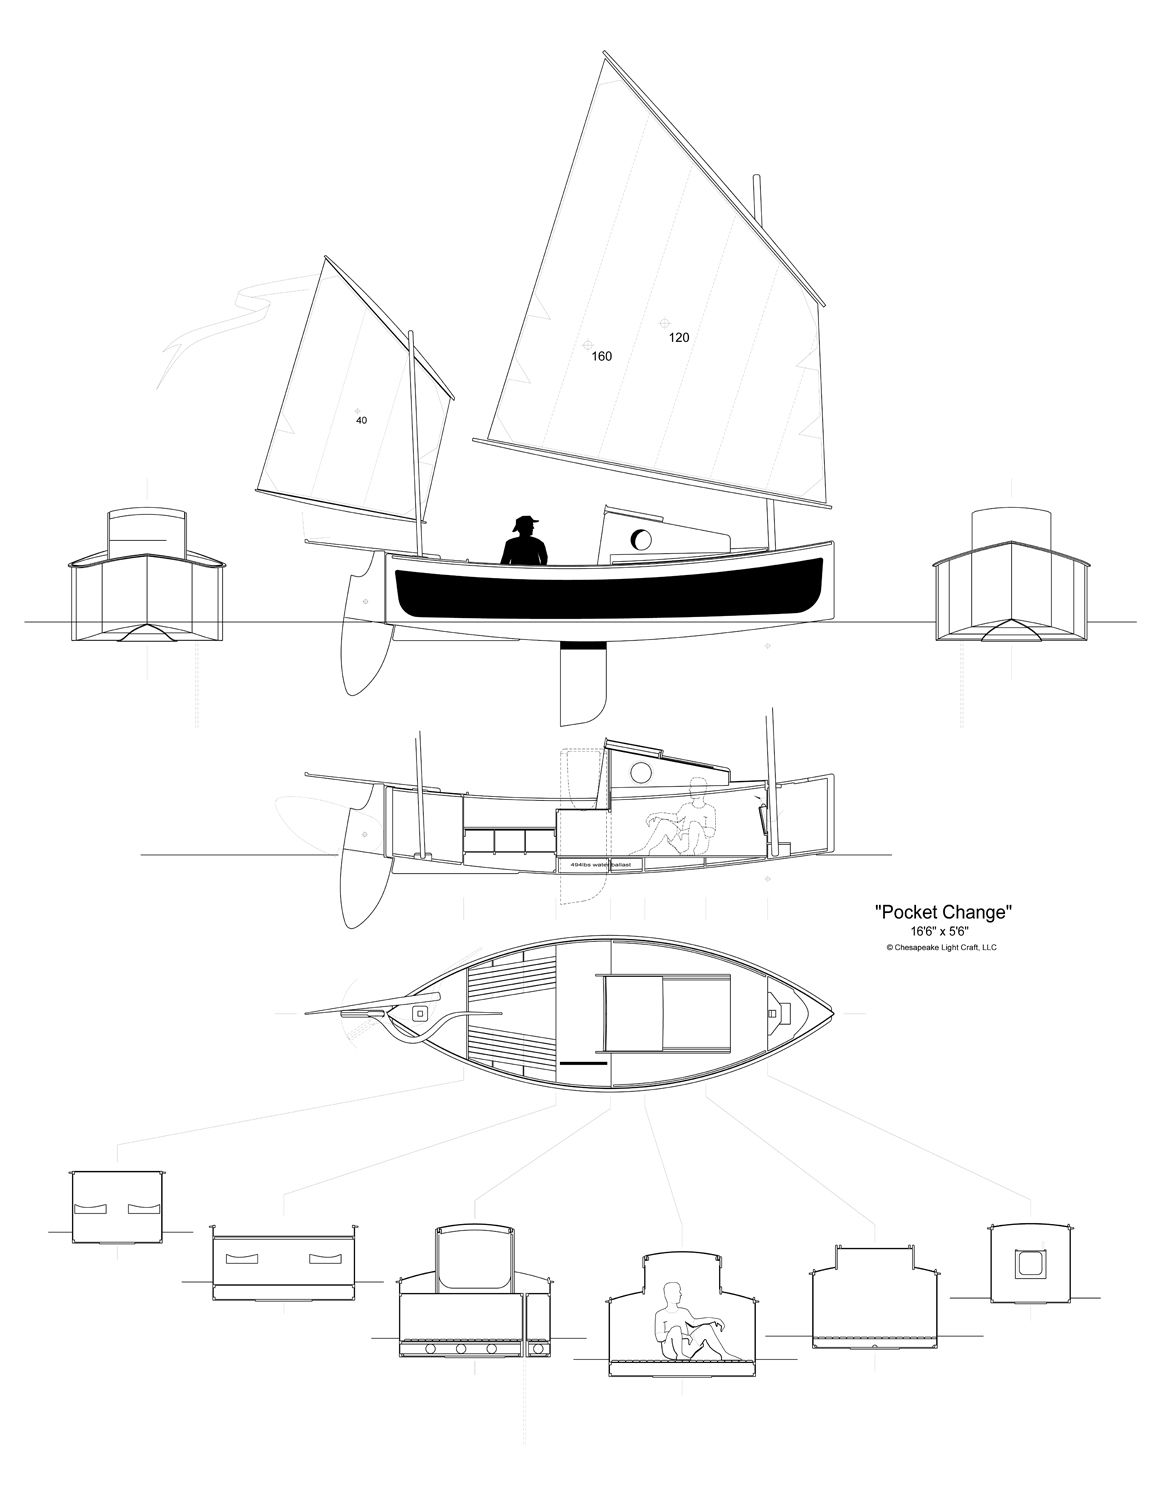 Pin By Vesel Tzankov On Boat Yacht And Sail